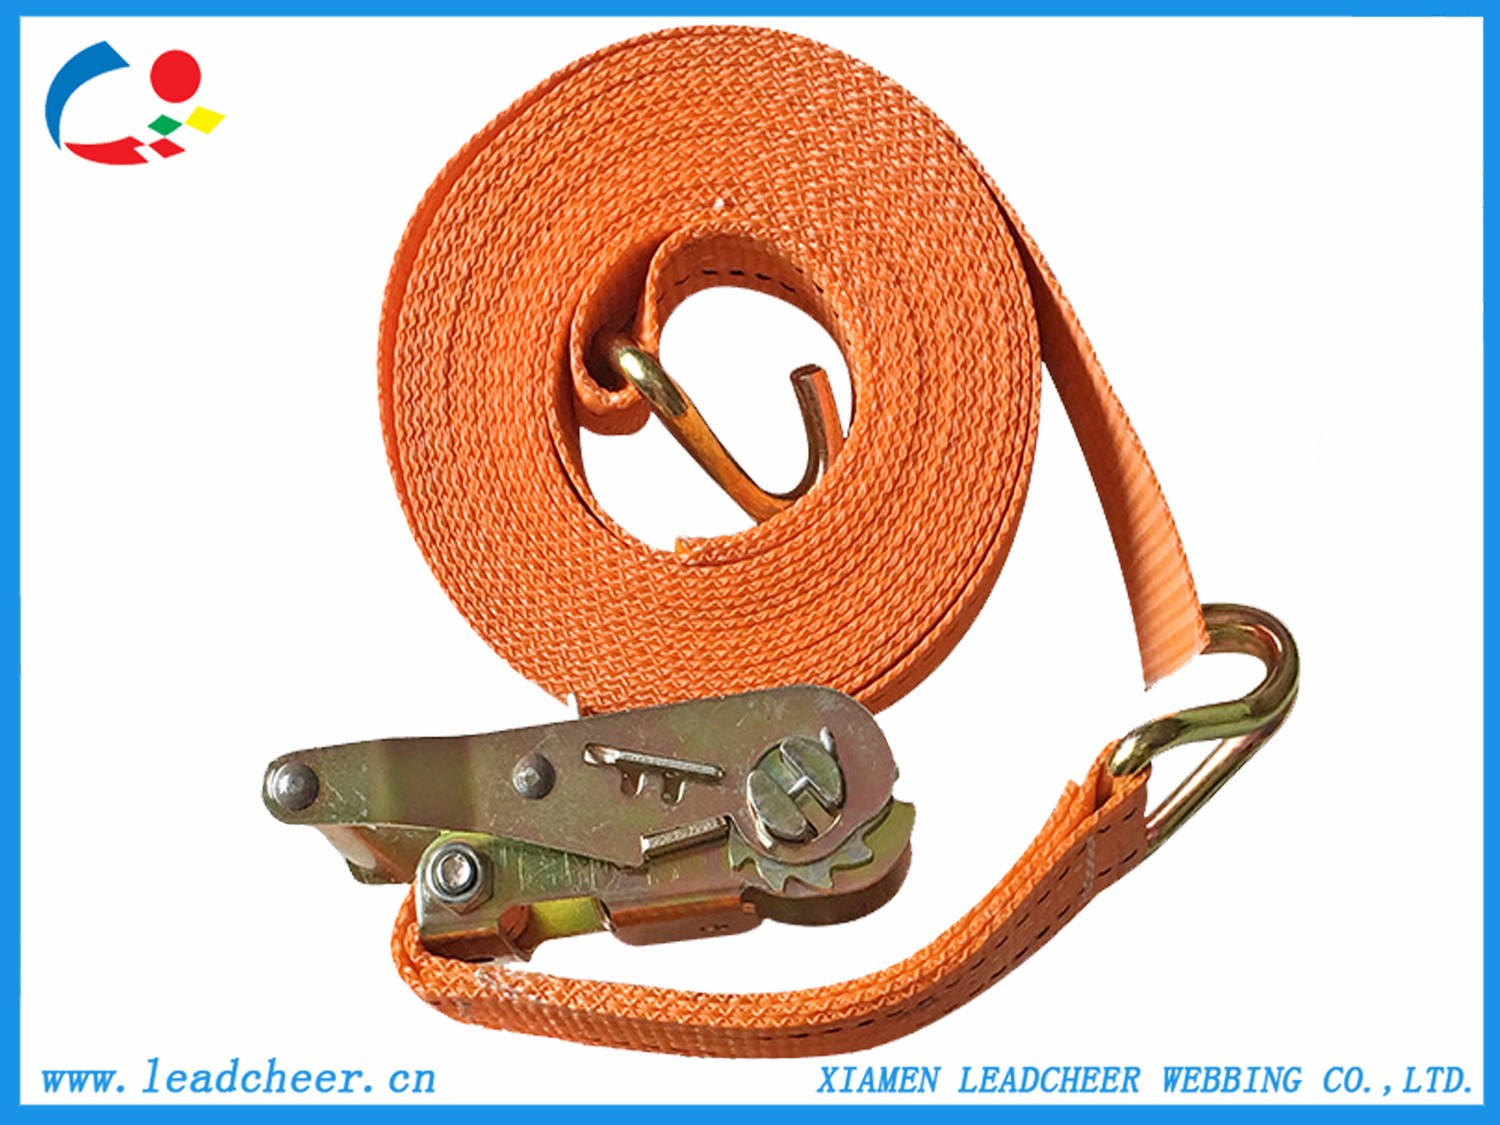 High quality Durable Heavy Duty Ratchet Strap for Truck Cargo Load Quotes,China Durable Heavy Duty Ratchet Strap for Truck Cargo Load Factory,Durable Heavy Duty Ratchet Strap for Truck Cargo Load Purchasing